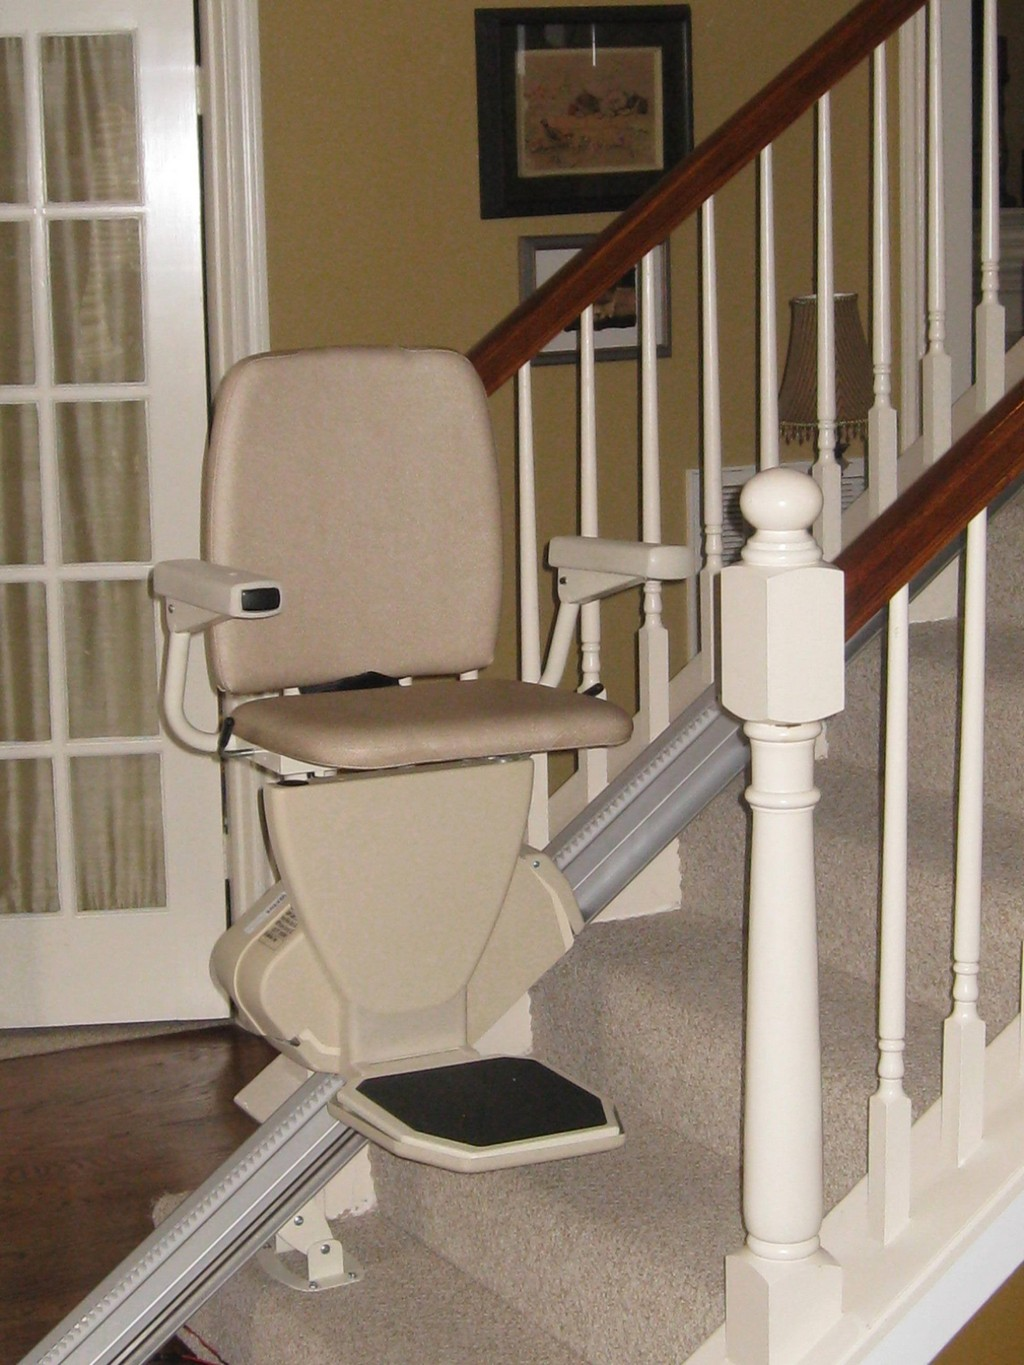 concord stairlift repair instructions, power stair lift, handicapped stair lifts, freedom stair chair lift